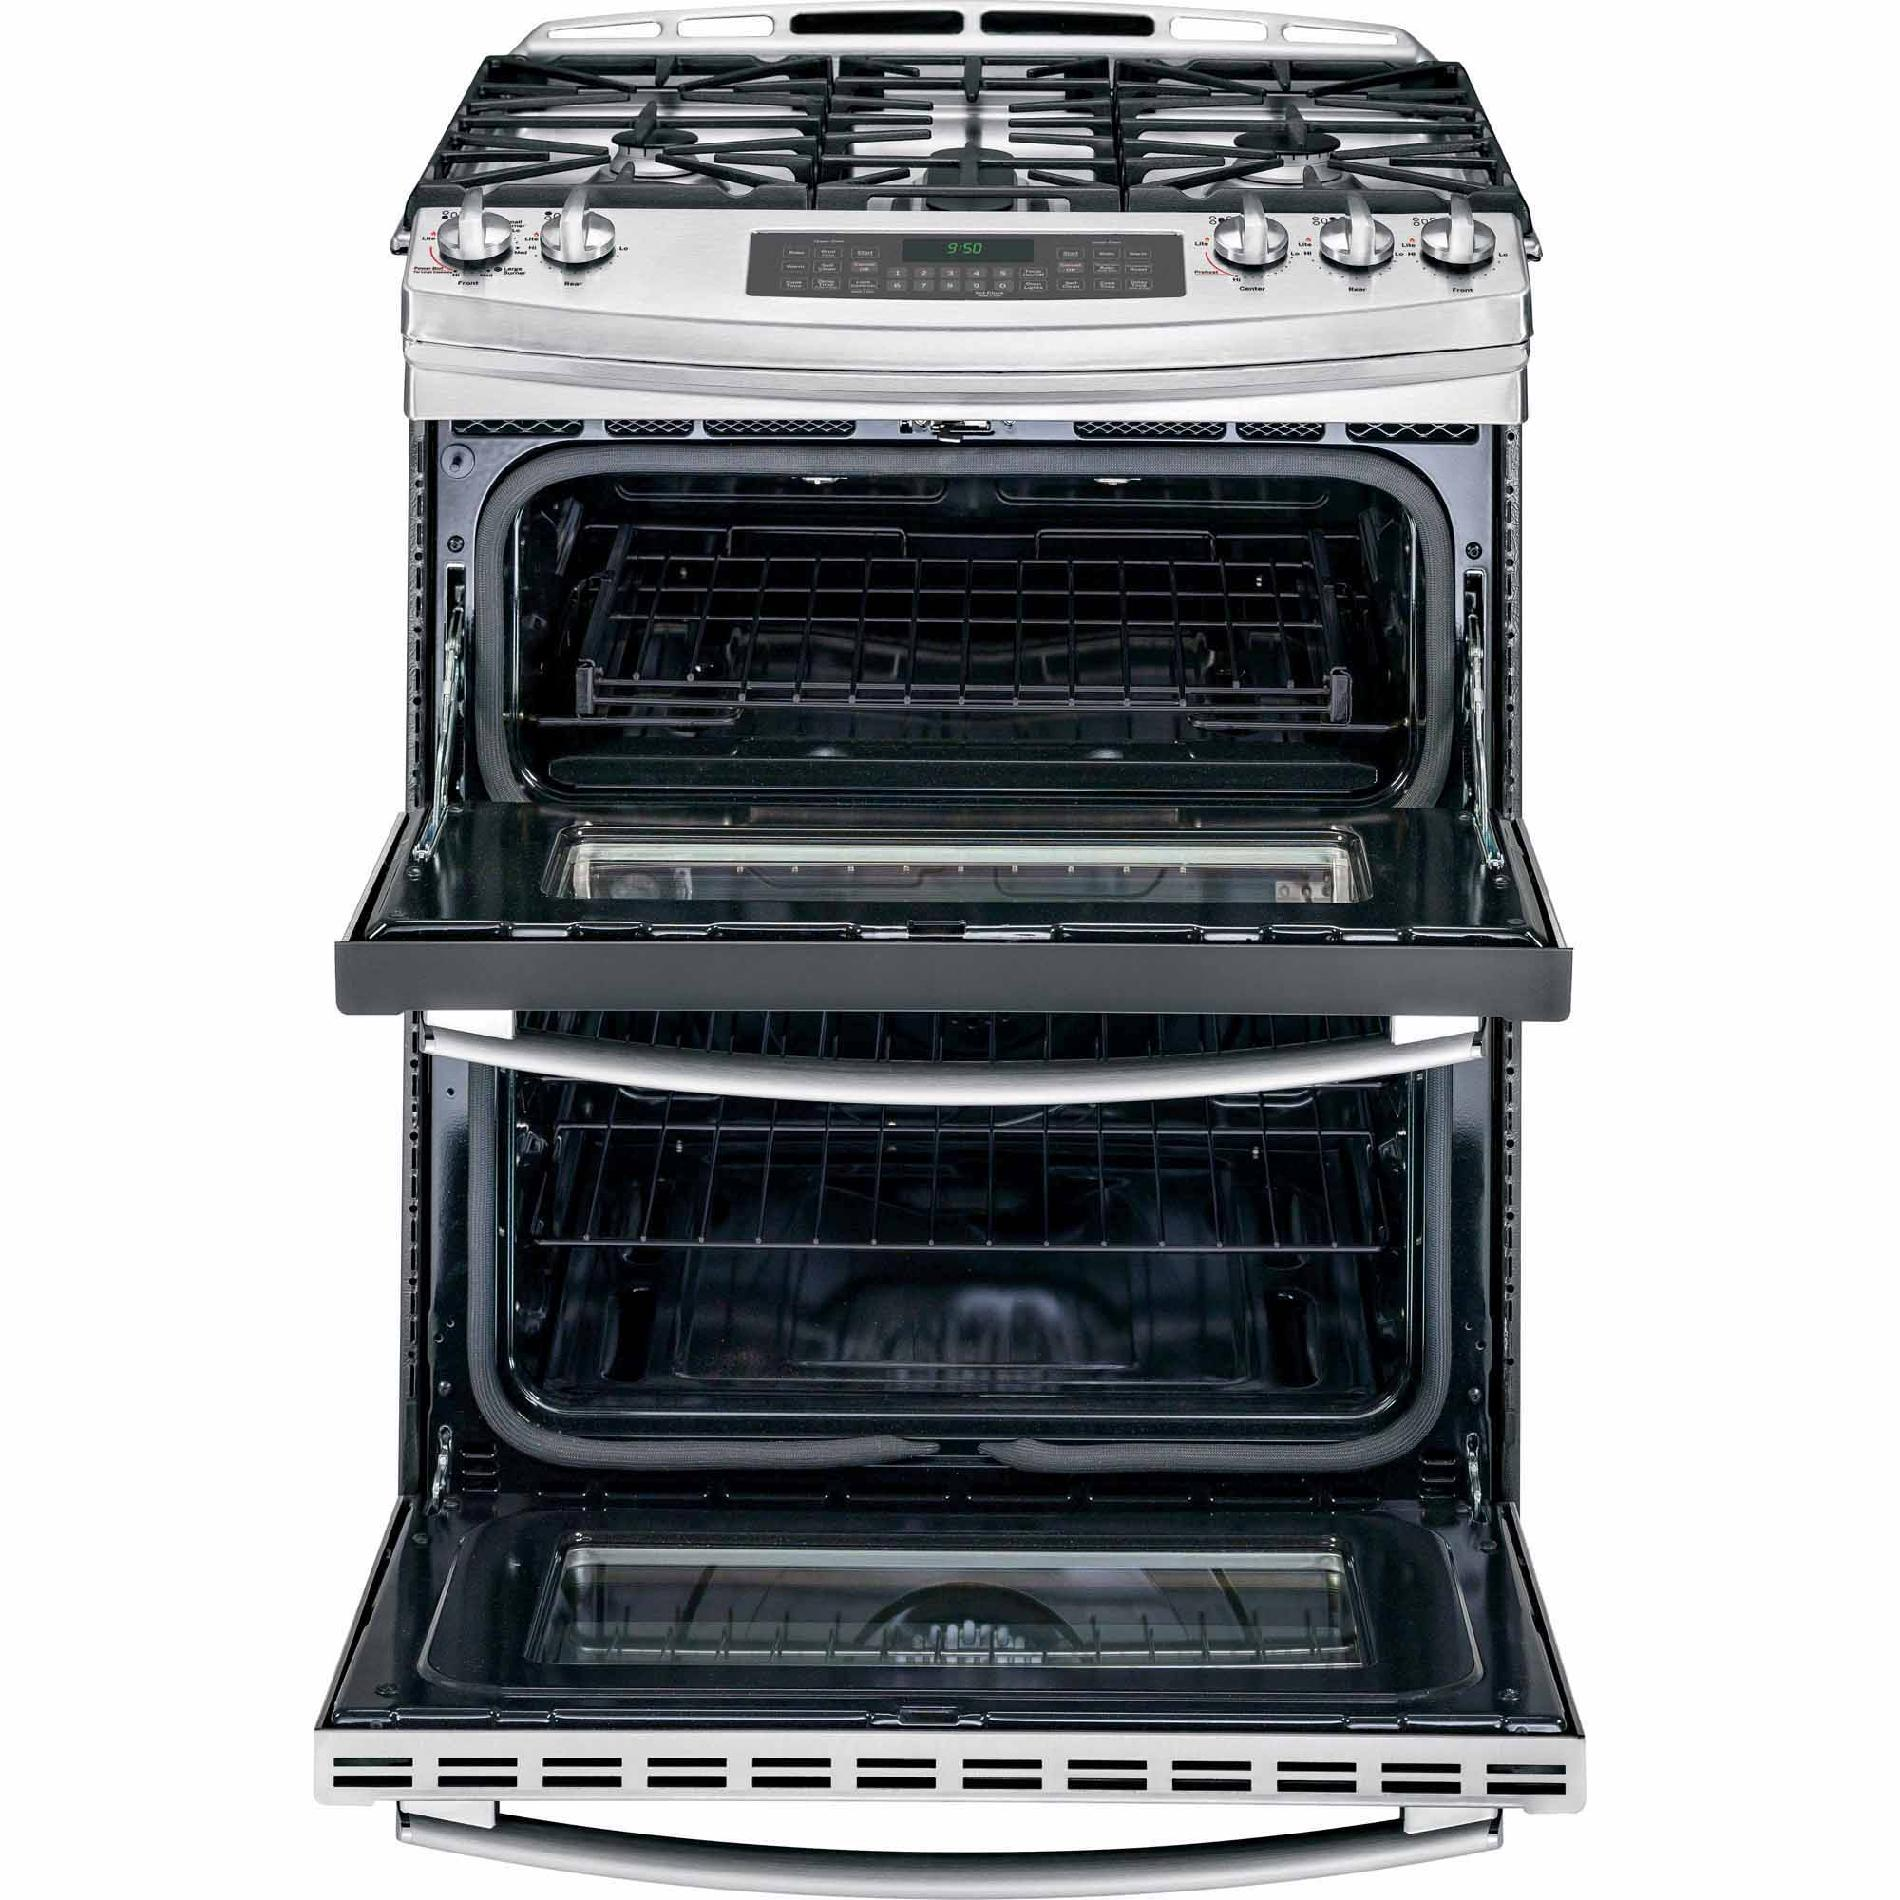 GE Profile PGS950SEFSS 6.8 cu. ft. Slide-In Gas Range w/ Convection - Stainless Steel